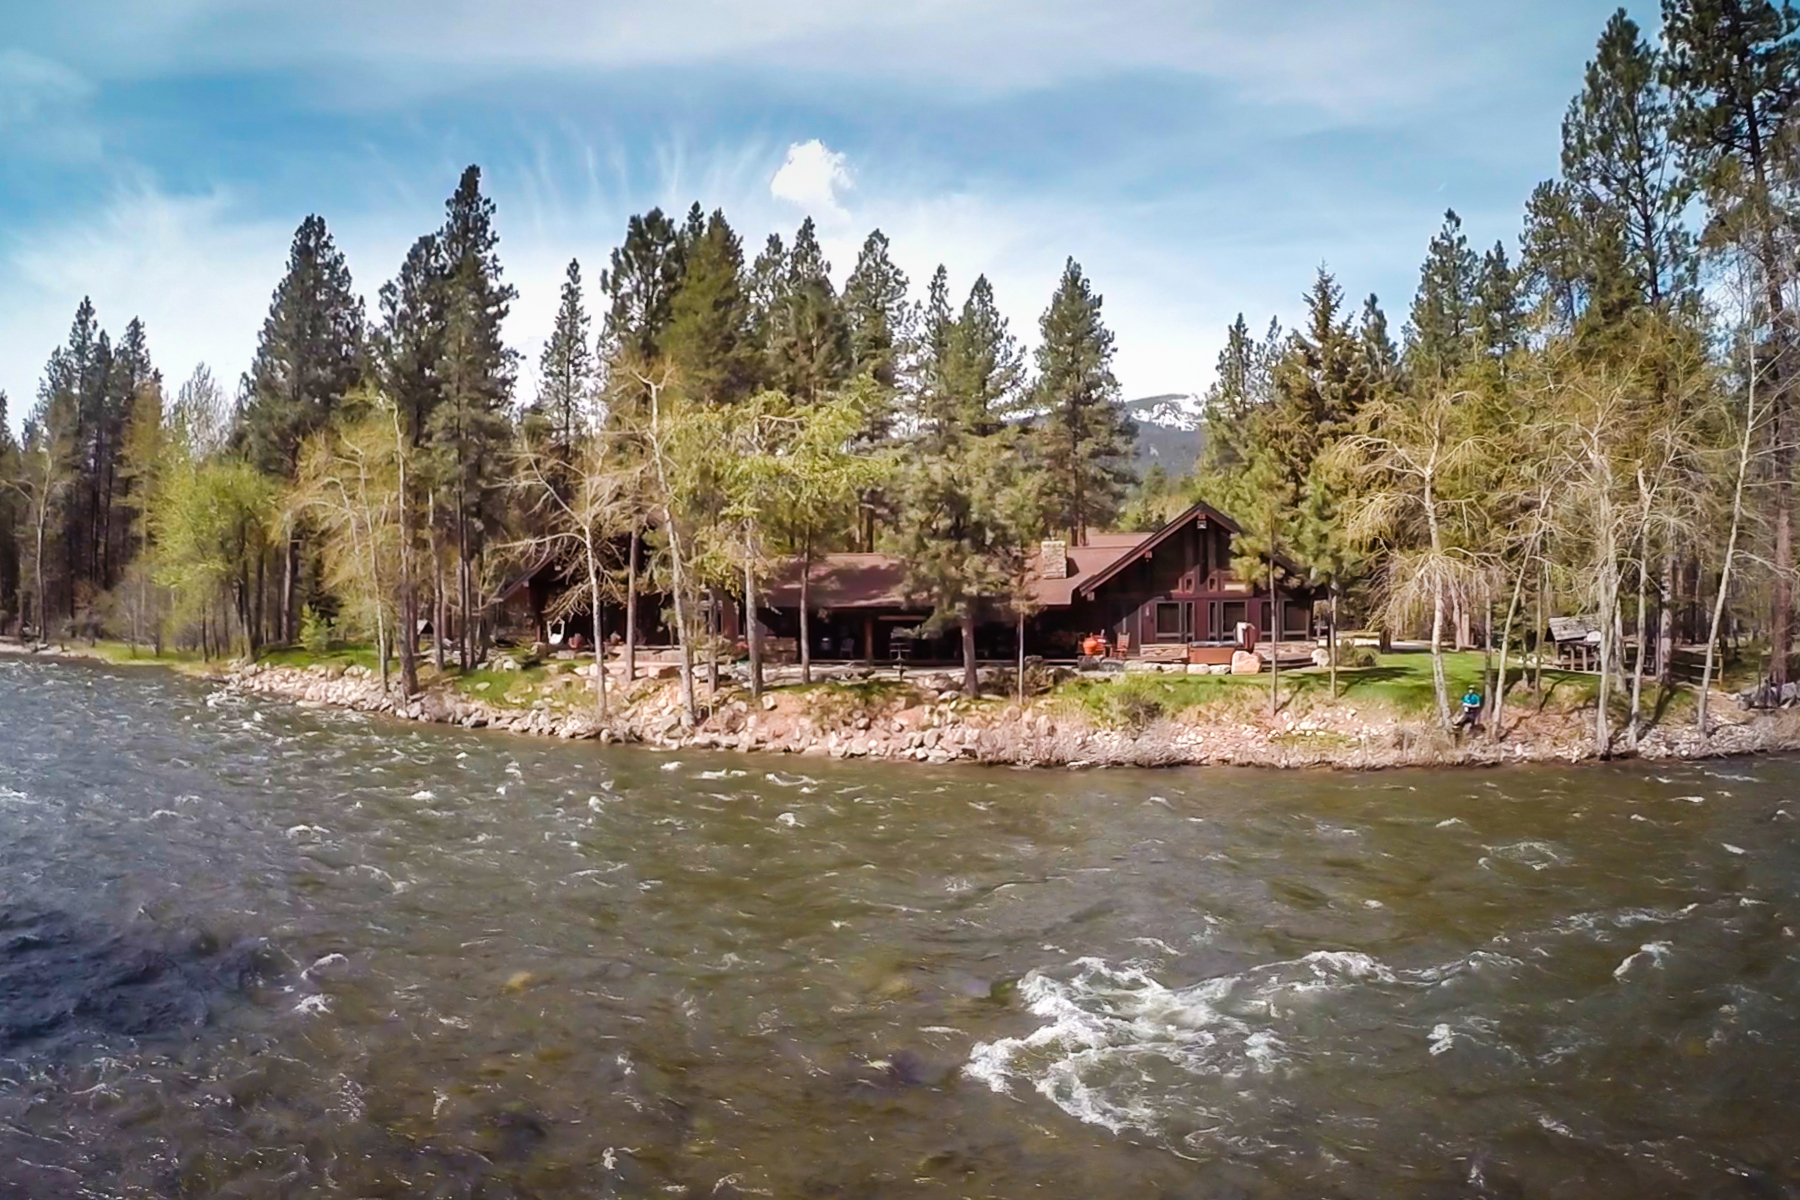 Single Family Home for Sale at 5492 West Fork Road 5492 West Fork Rd Darby, Montana 59829 United States